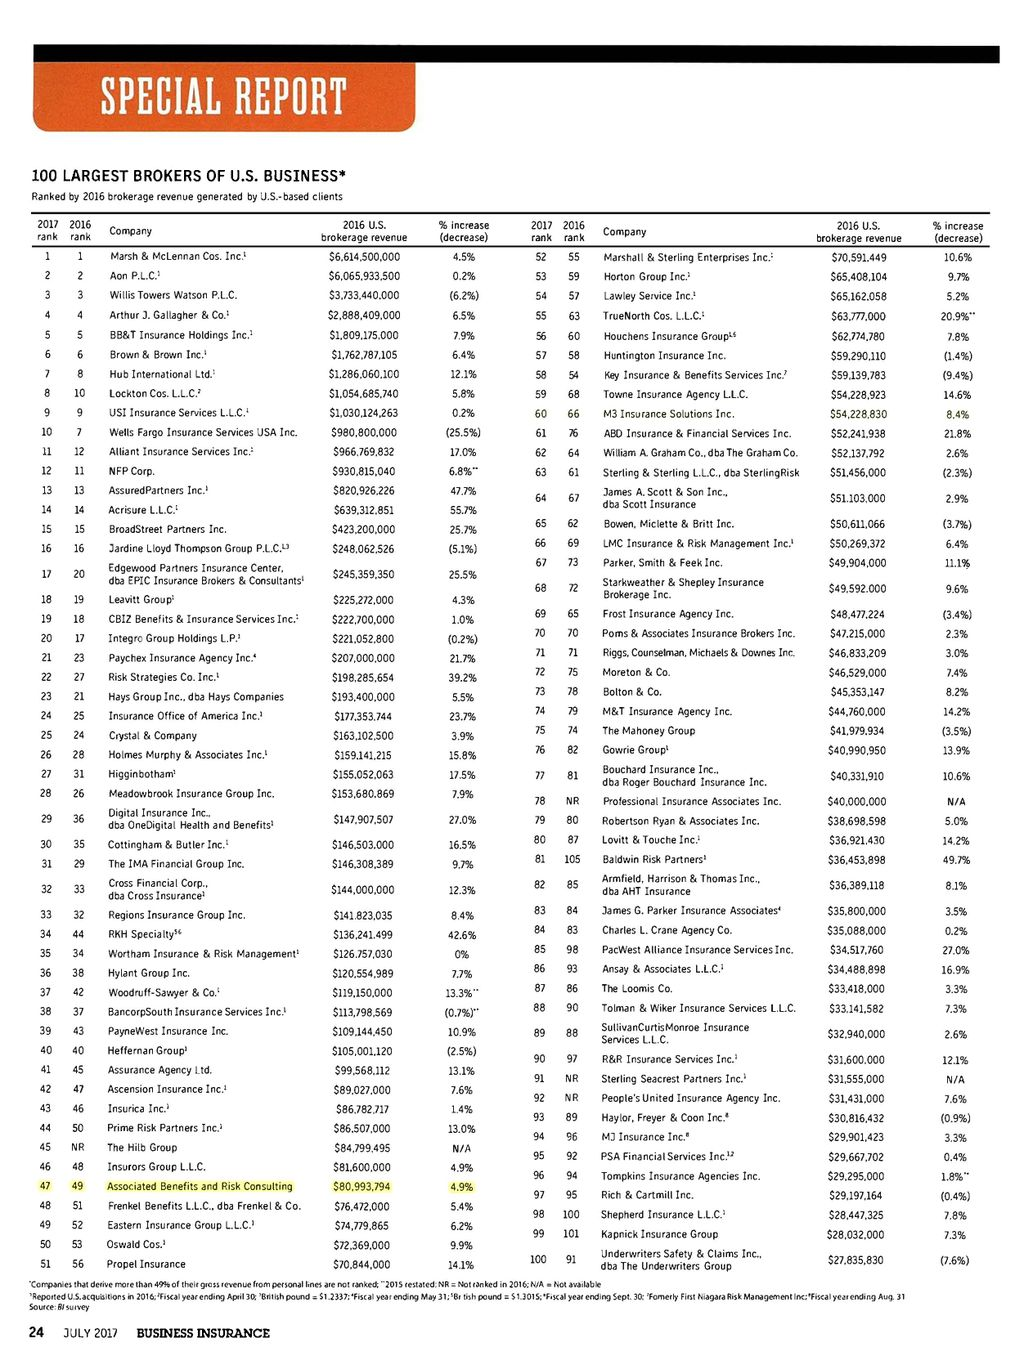 100 Largest Brokers in U.S. Business 2017